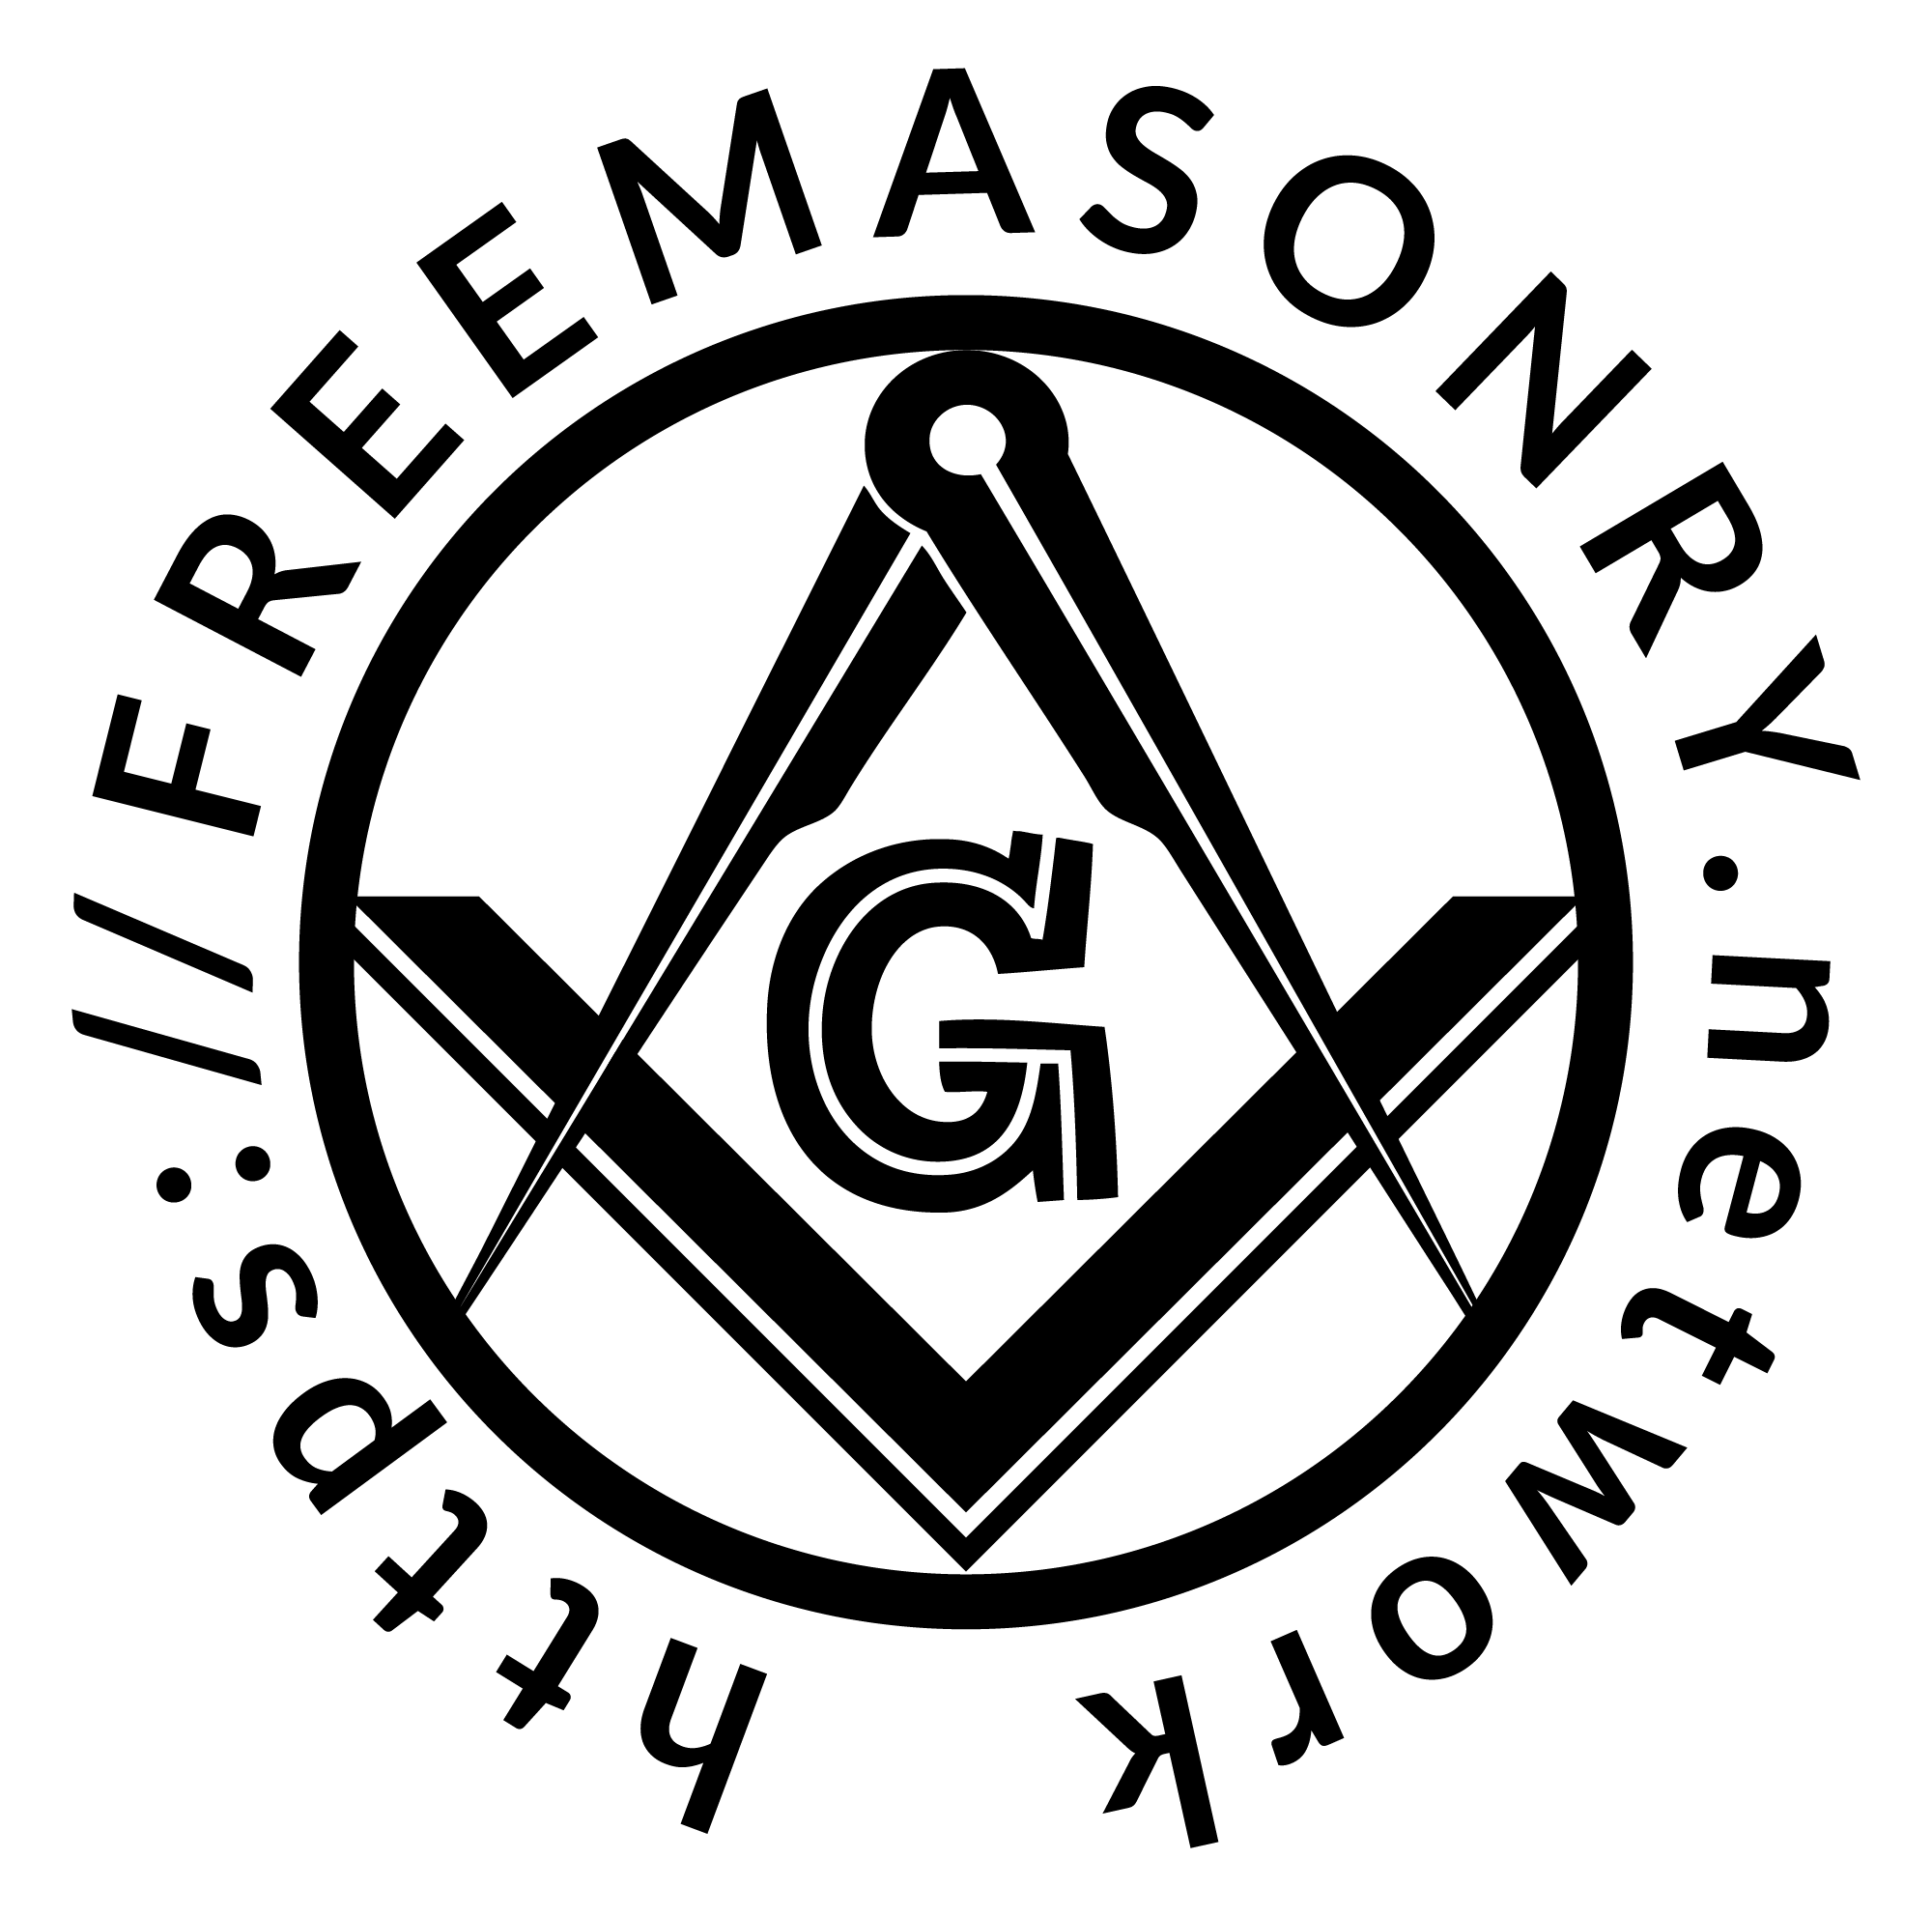 FAQ – WHAT IS FREEMASONRY?